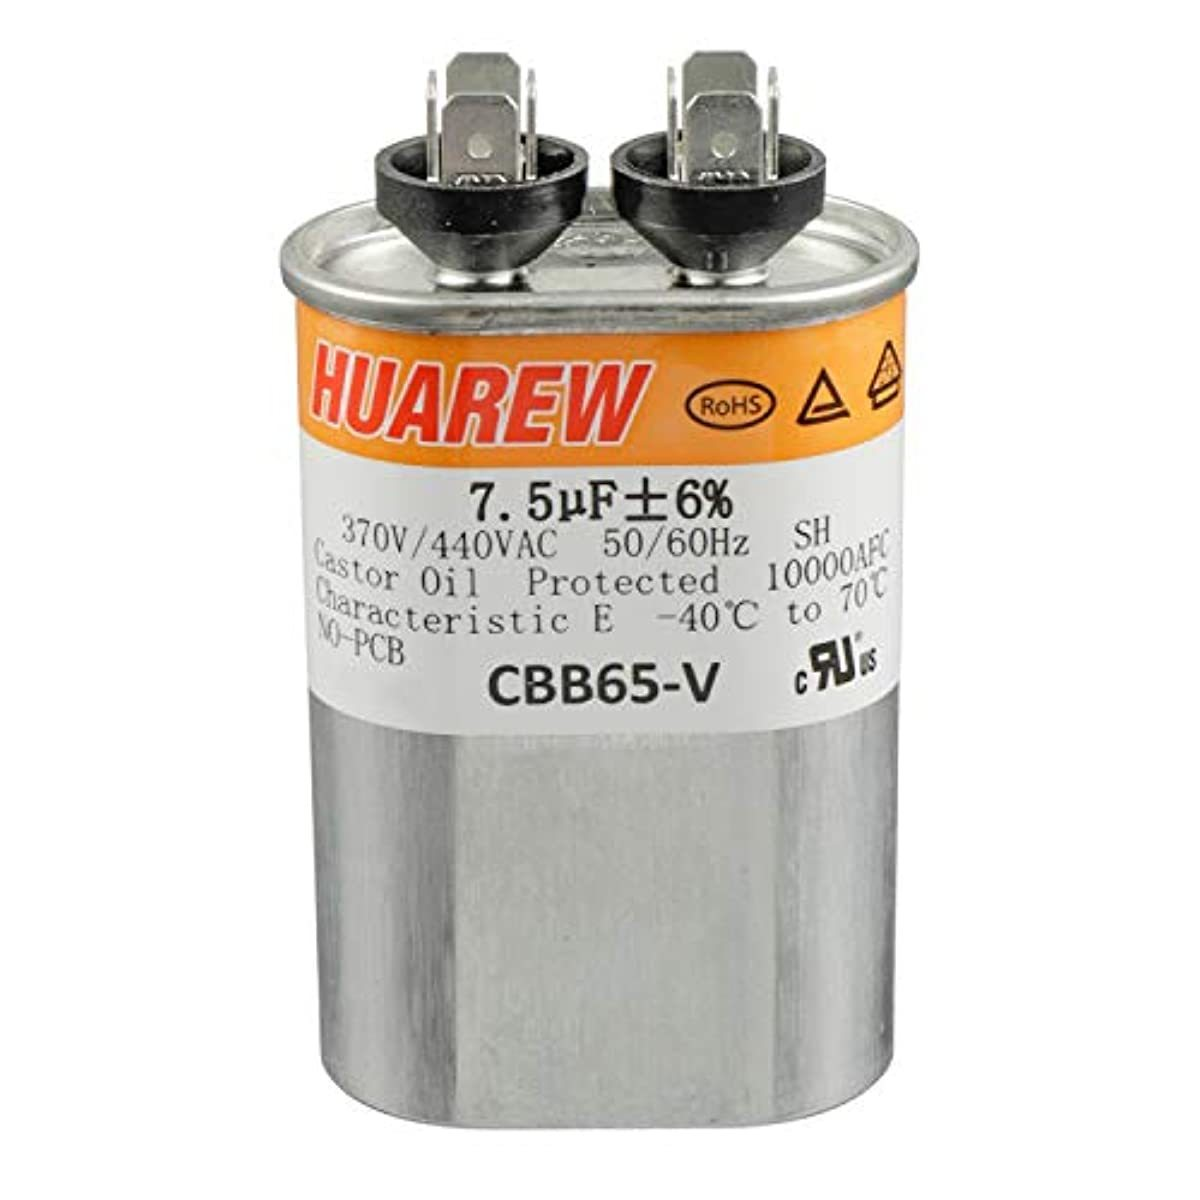 HUAREW 7.5 uF MFD ±6% 370/440 VAC CBB65 Oval Run Start Capacitor for Fan Start and Cool or Heat Pump Air Conditione or AC Motor Run